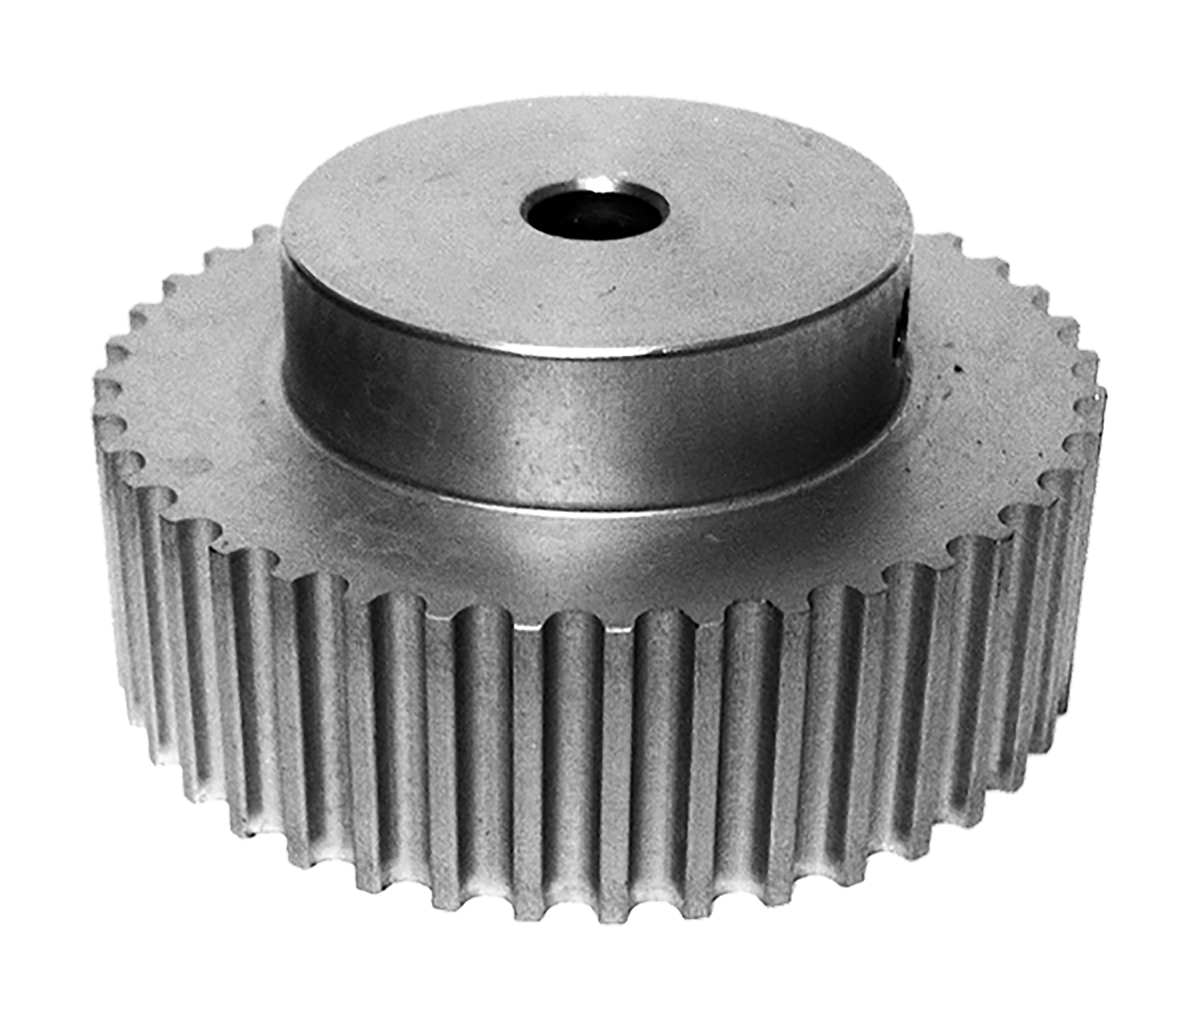 25-5M15-6A3 - Aluminum Powerhouse®HTD® Pulleys